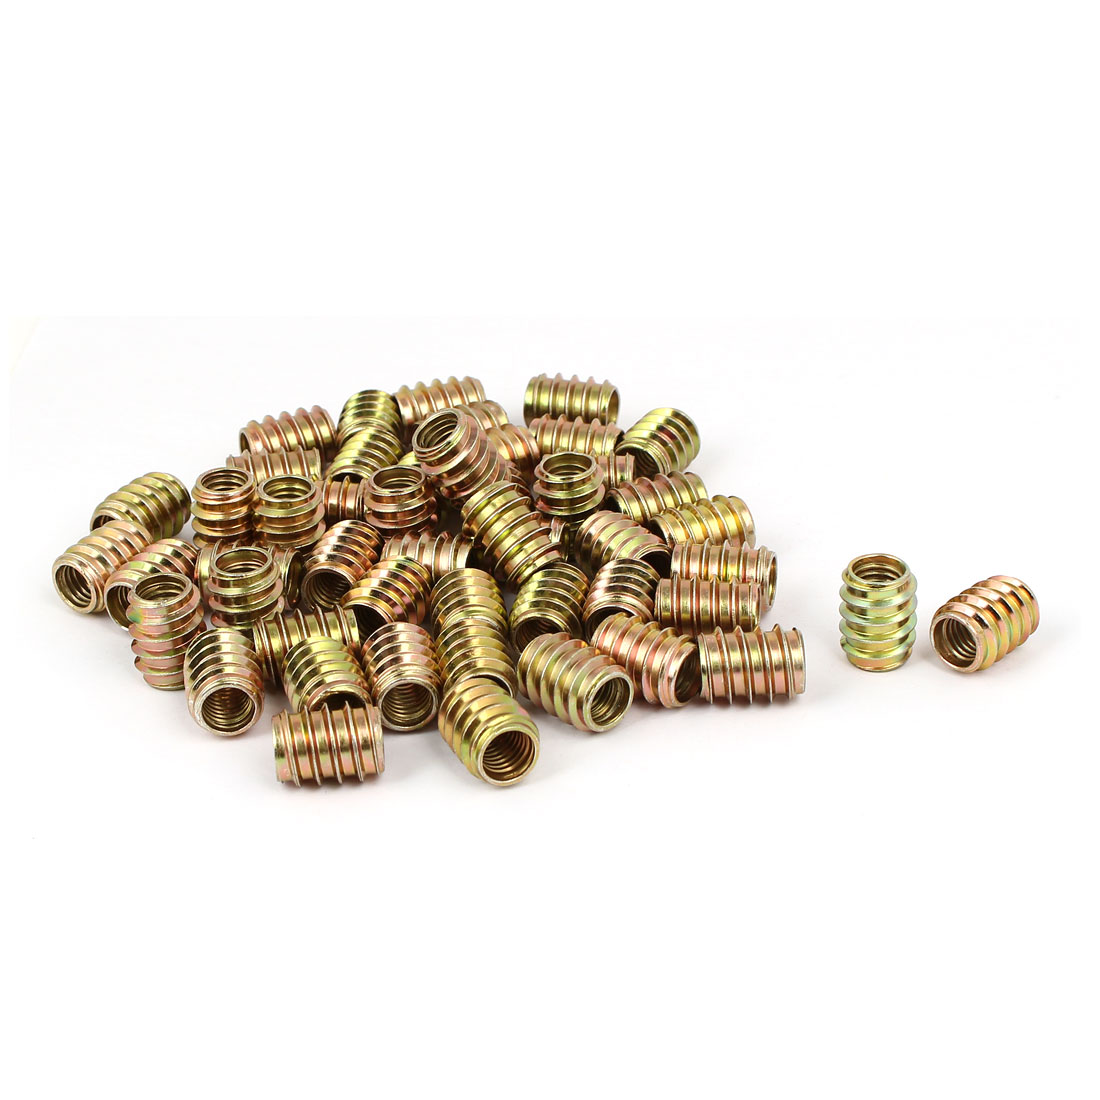 Wood Furniture Insert Screw E-Nut Bronze Tone M8 x 17mm 50pcs